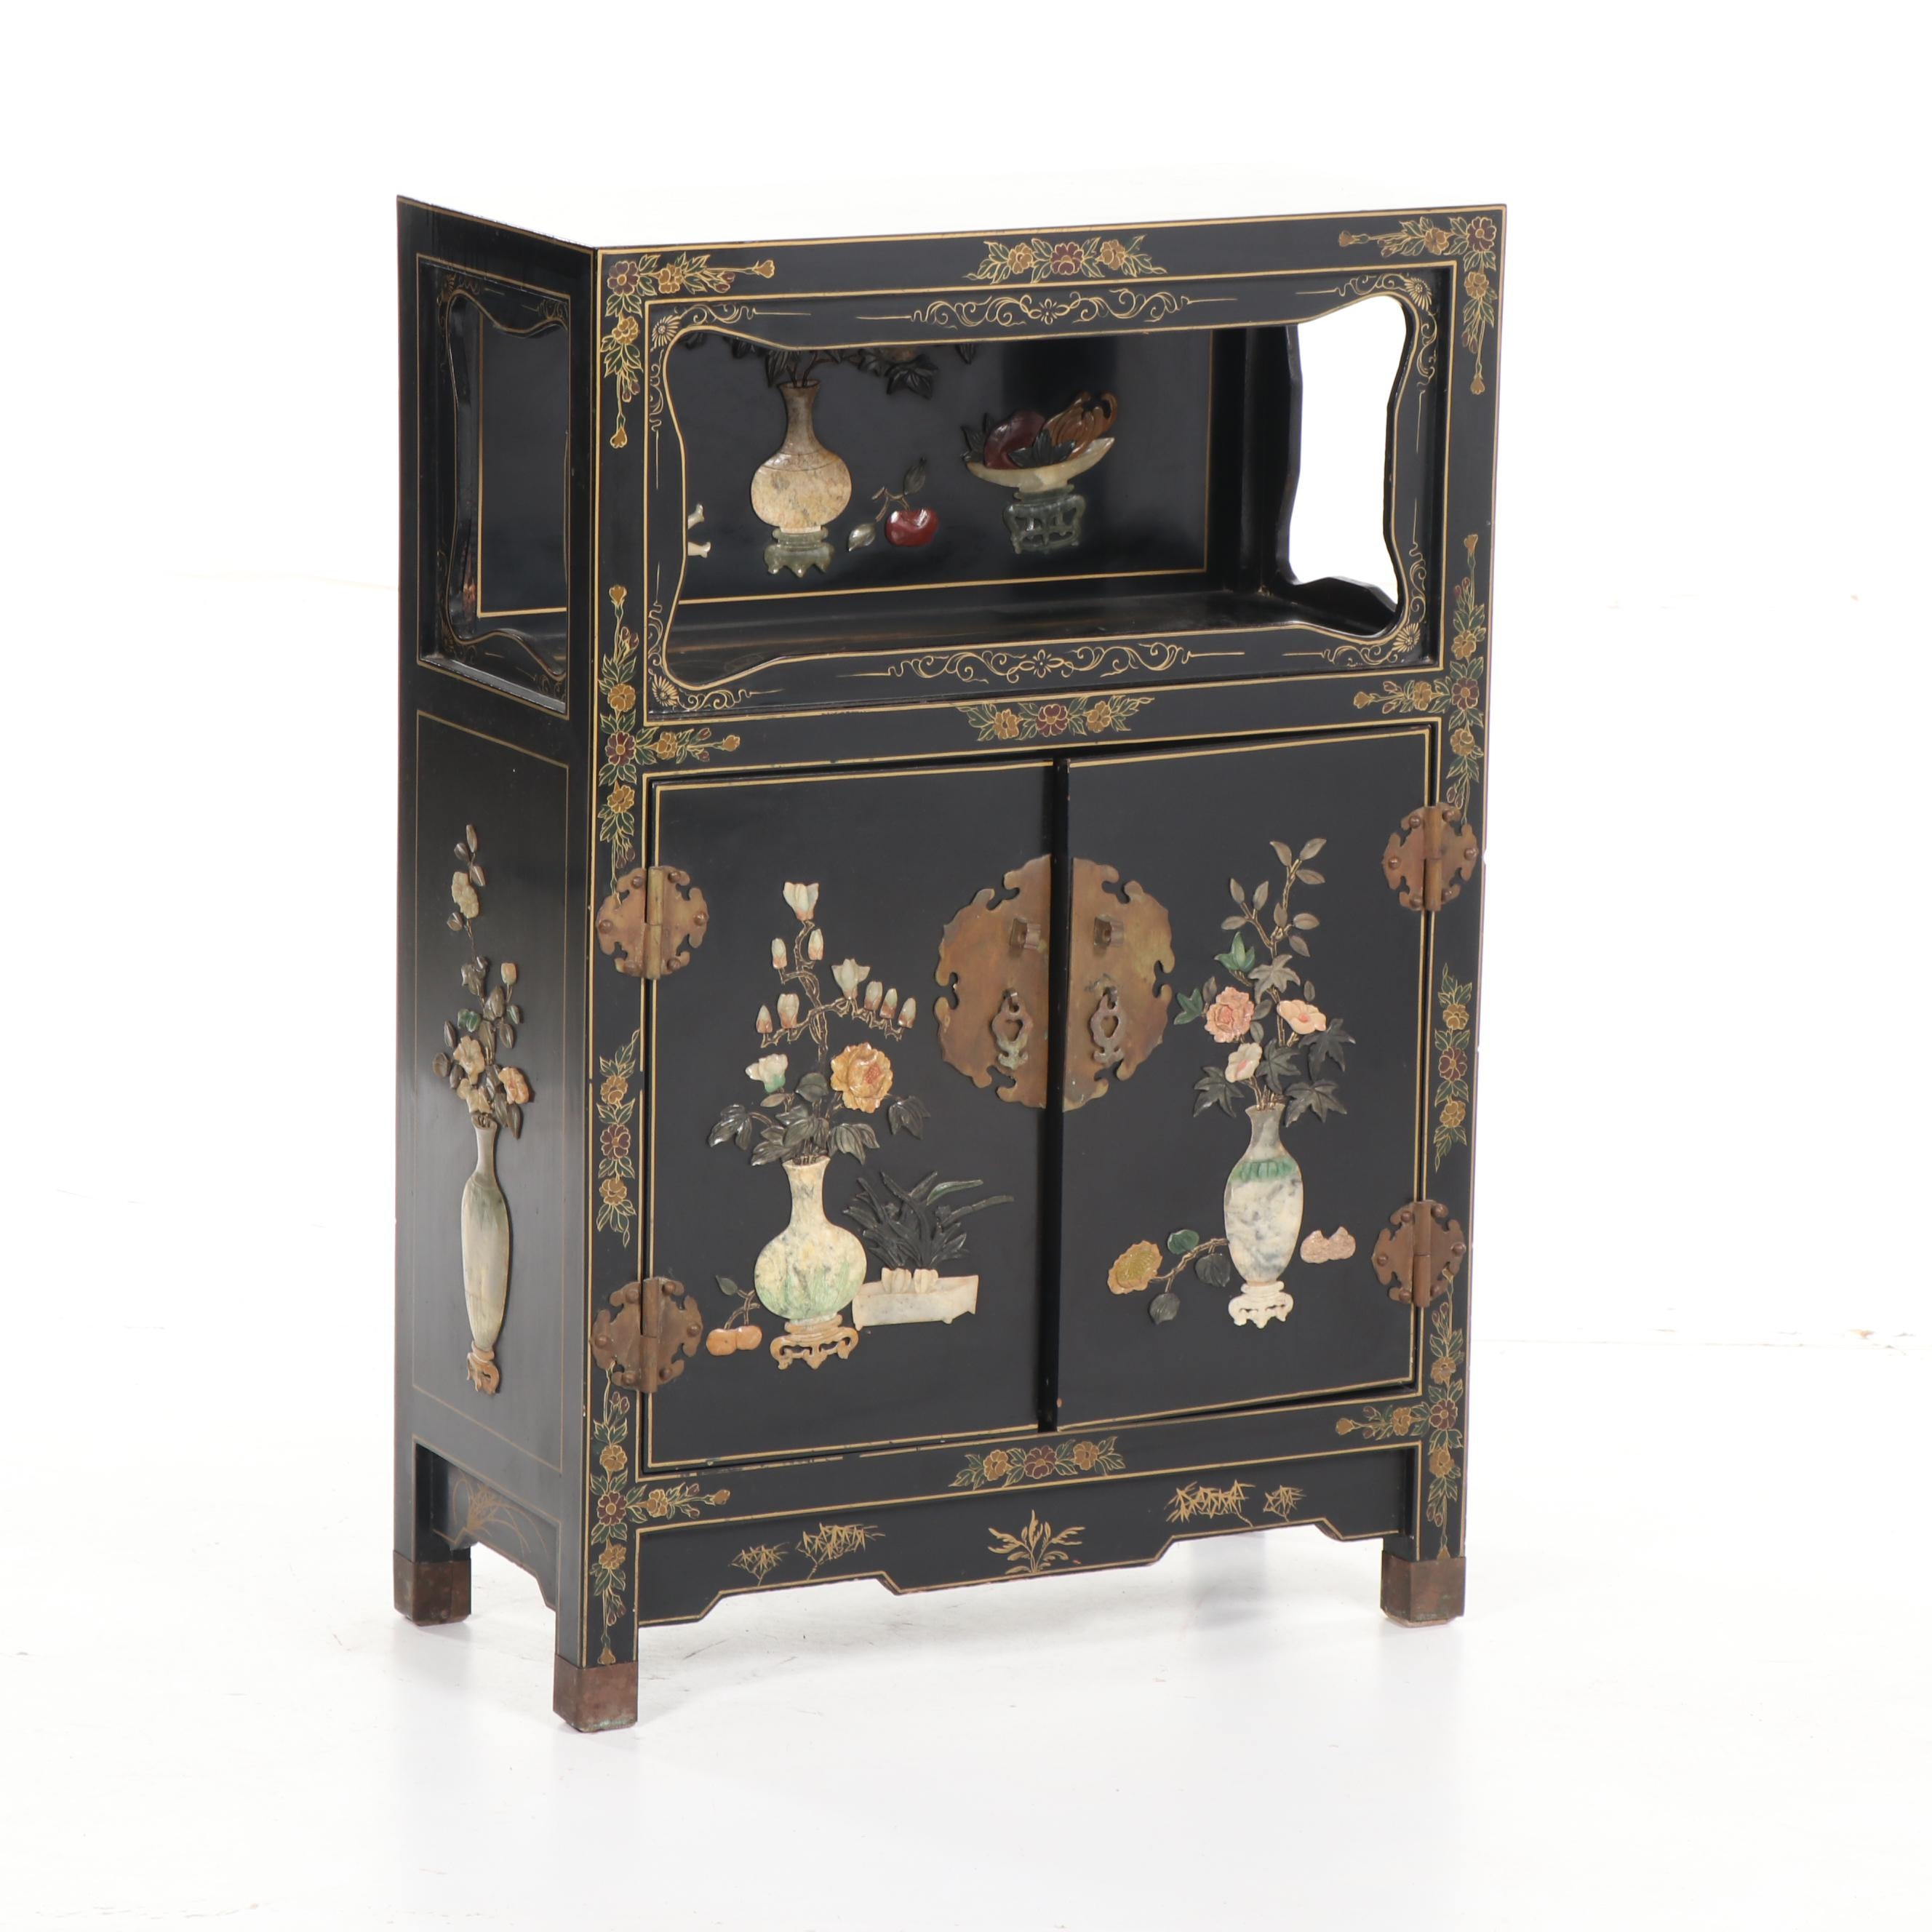 Chinese Black Lacquer Wood Cabinet with Stone Inlay, Mid-20th Century